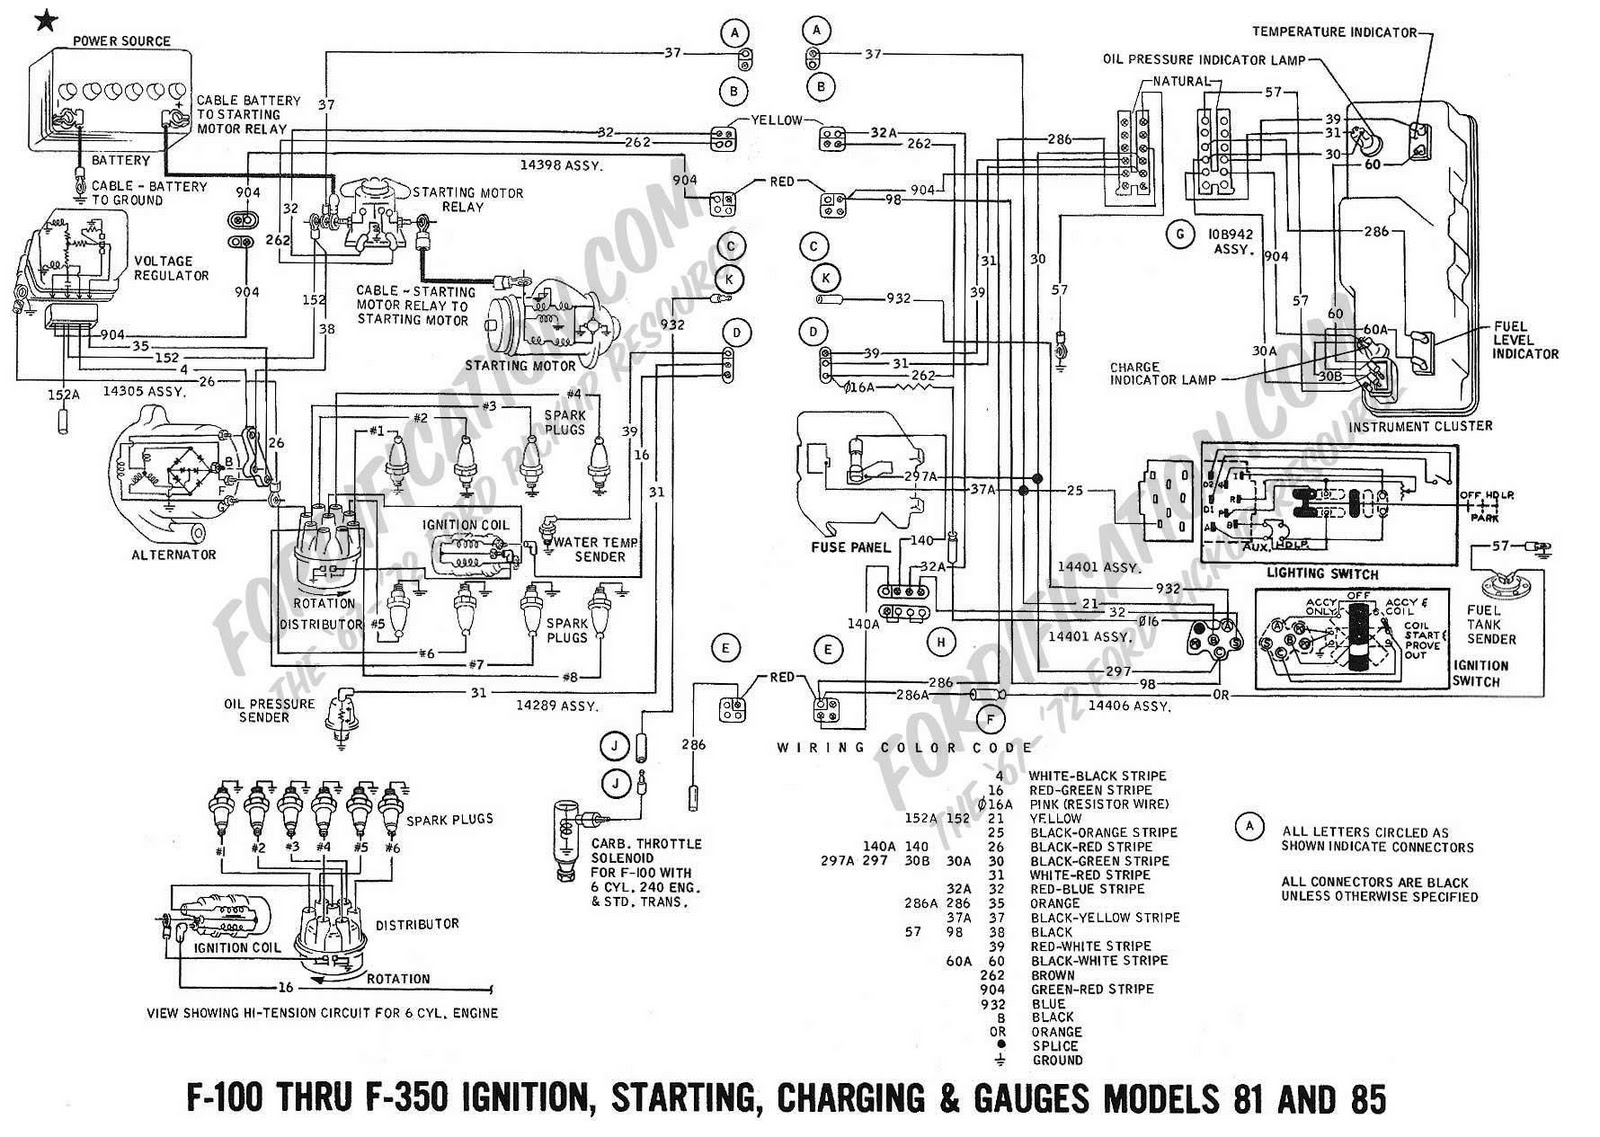 1966 ford truck fuse box wiring diagram detailed 1966 chevy fuse box 1966 ford truck fuse box [ 1600 x 1137 Pixel ]